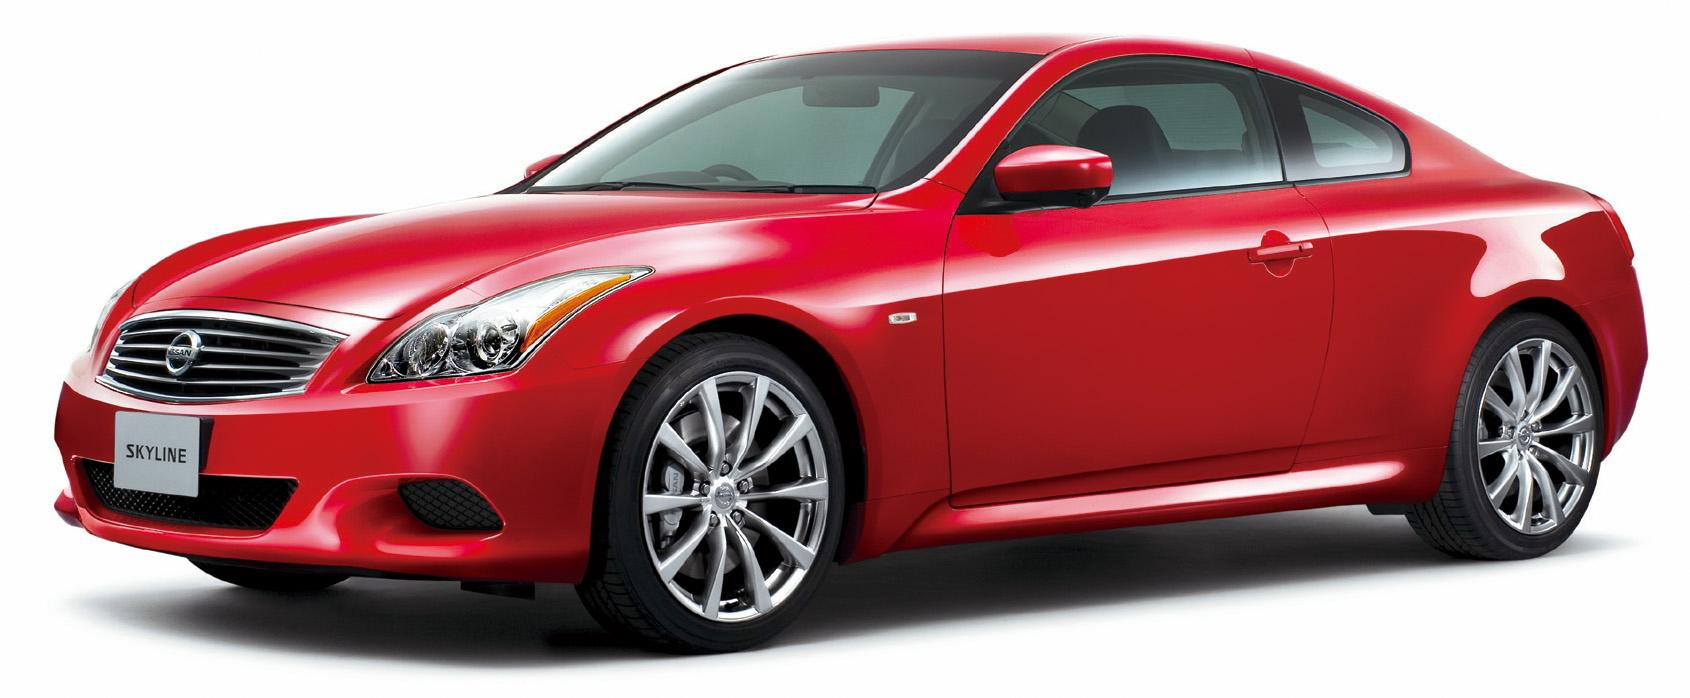 2008 Nissan Skyline Coupe Top Speed